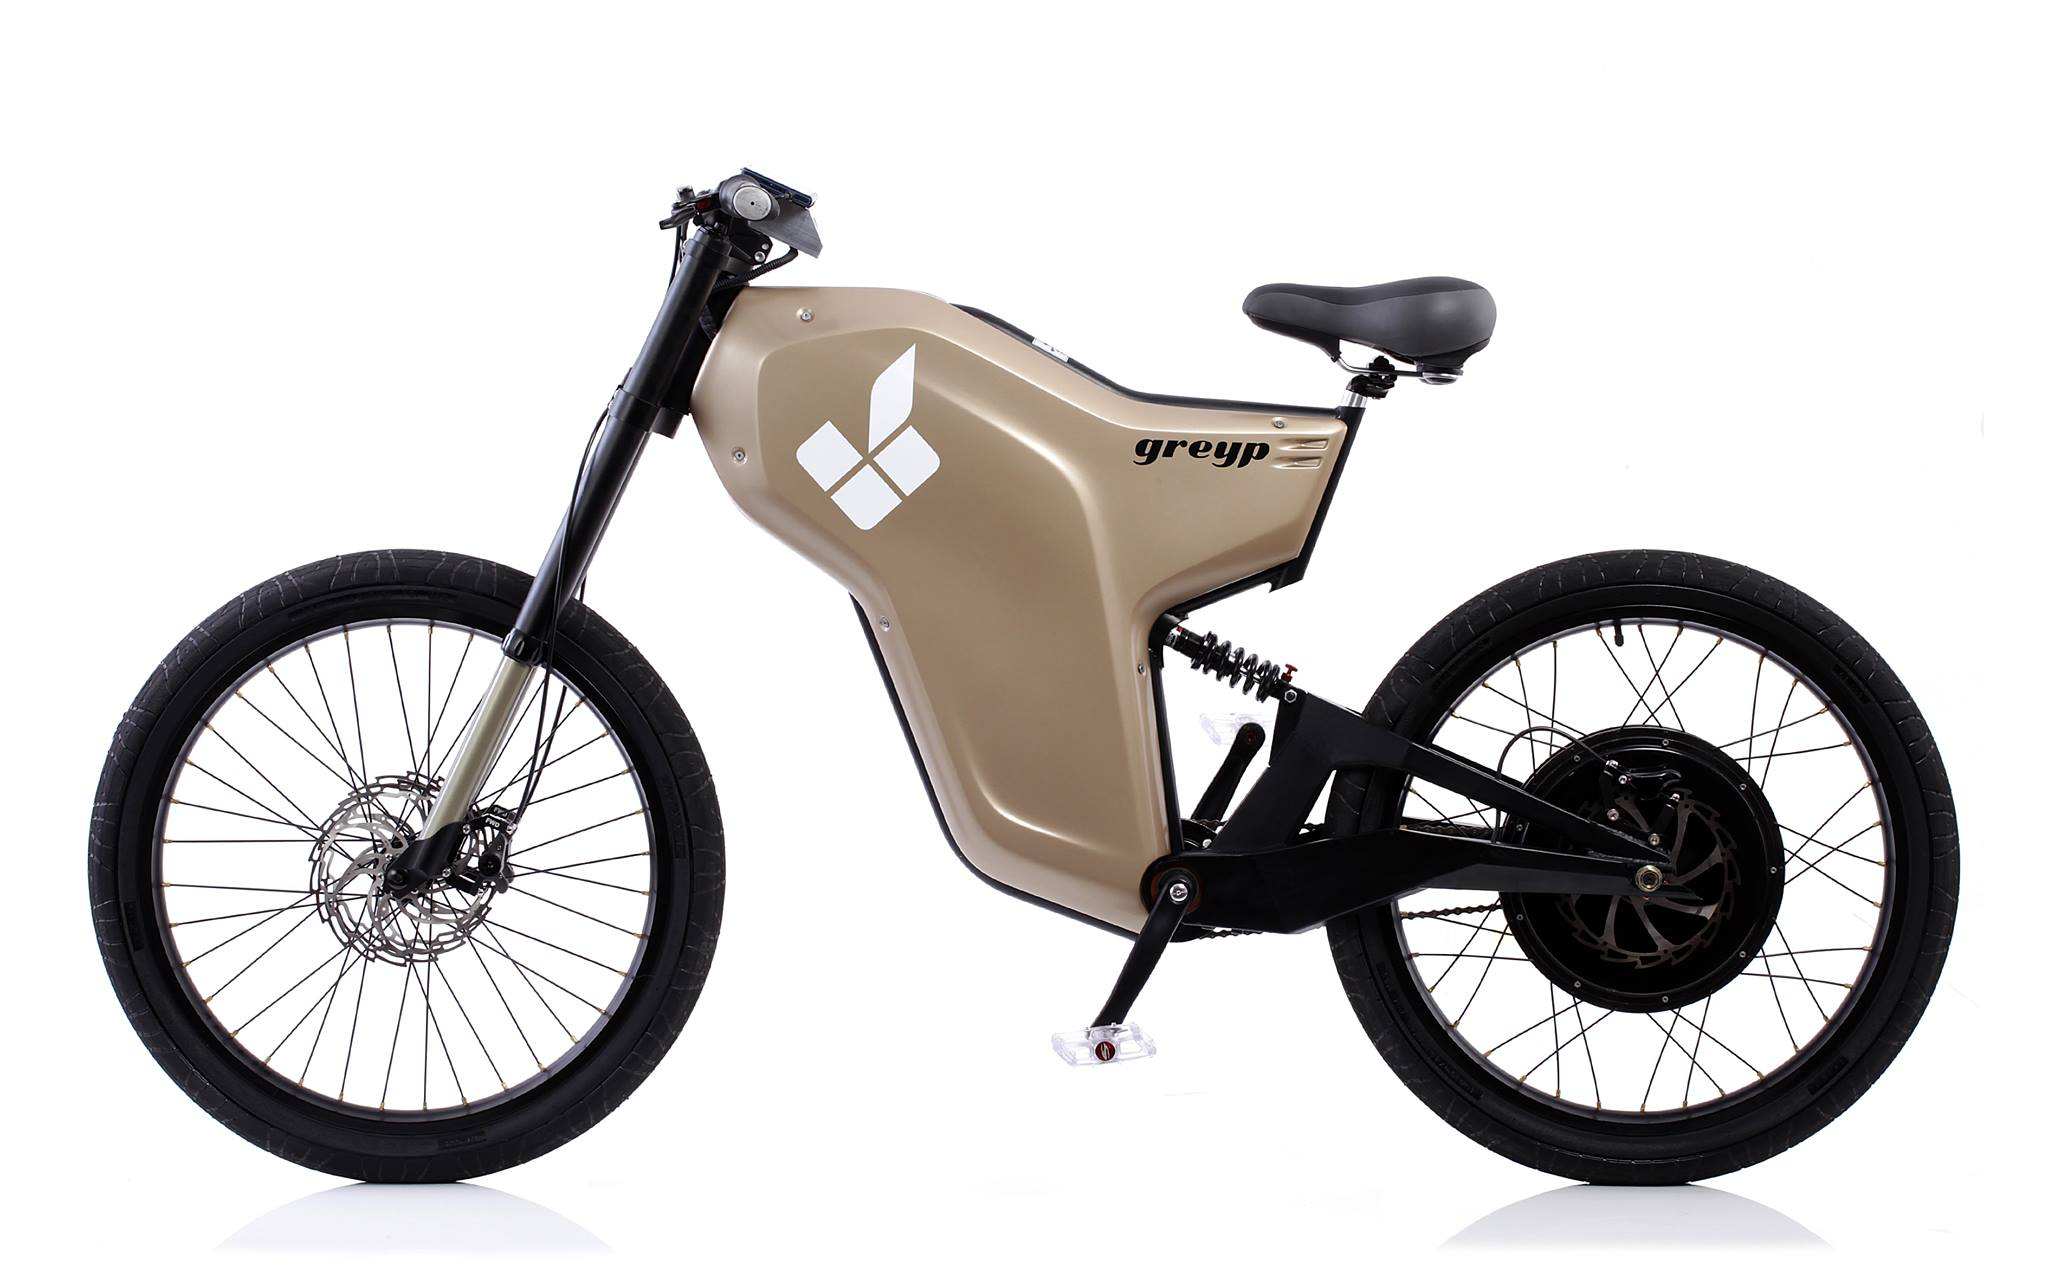 Croatian based electric car company Rimac has recently lifted the lid on its new bike come motorbike, the Greyp G12